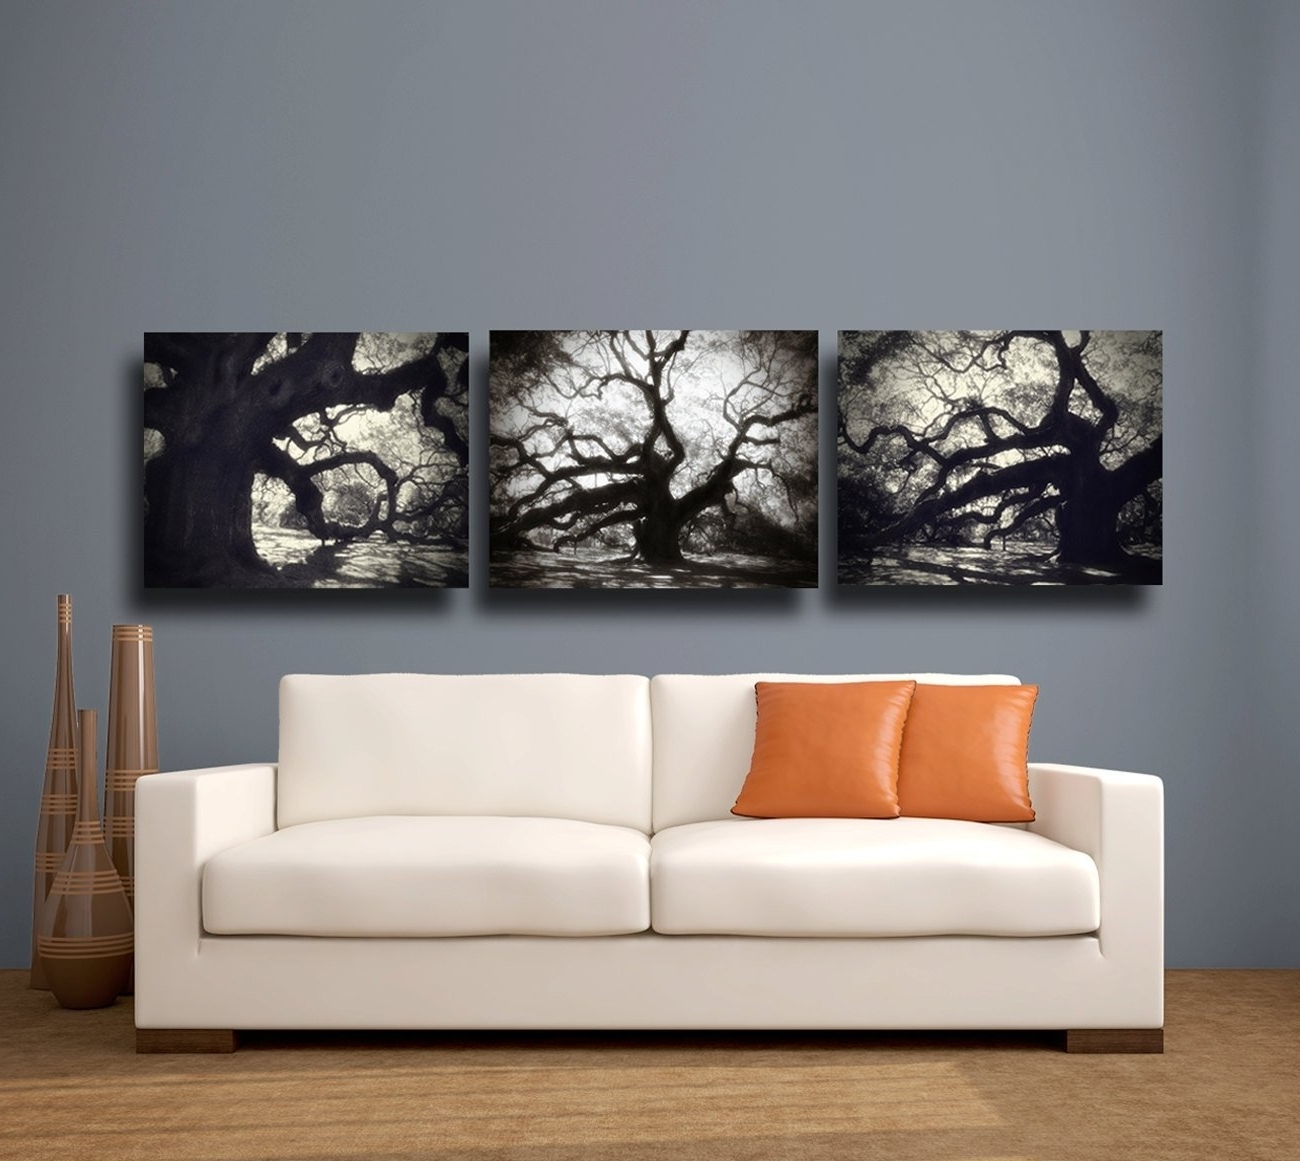 Newest Popular Wall Art Regarding Popular Wall Art Elegant Large Wall Art On Oversized Wall Art (View 5 of 15)